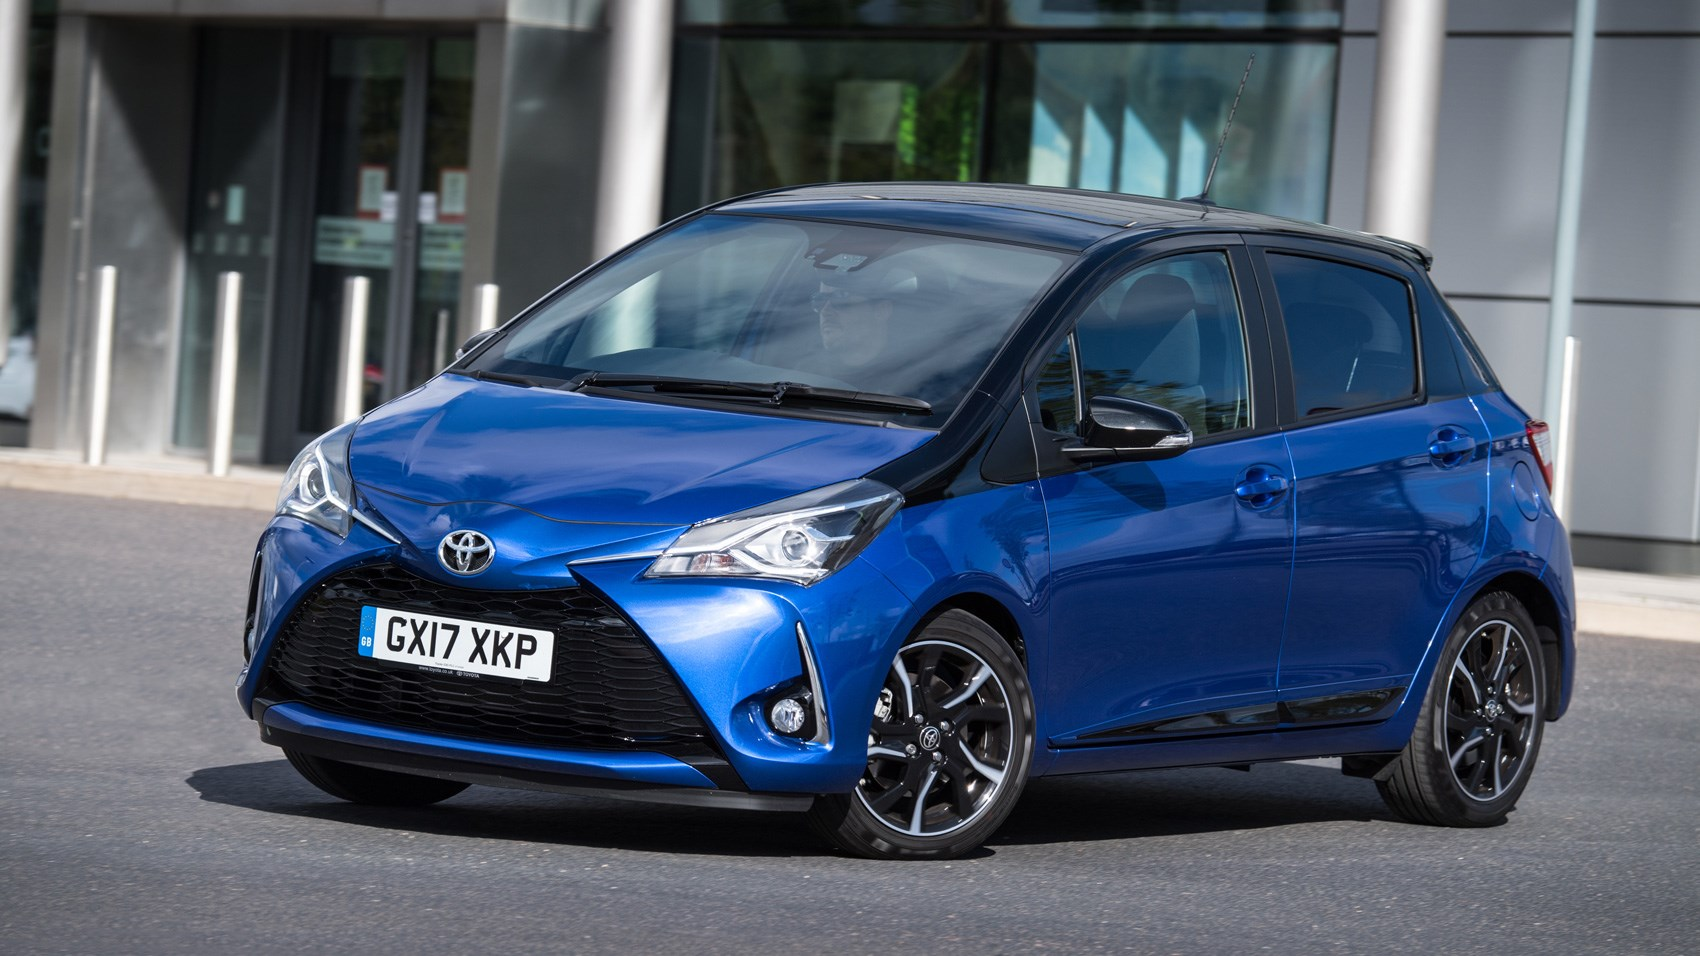 toyota yaris facelift 2017 review by car magazine. Black Bedroom Furniture Sets. Home Design Ideas